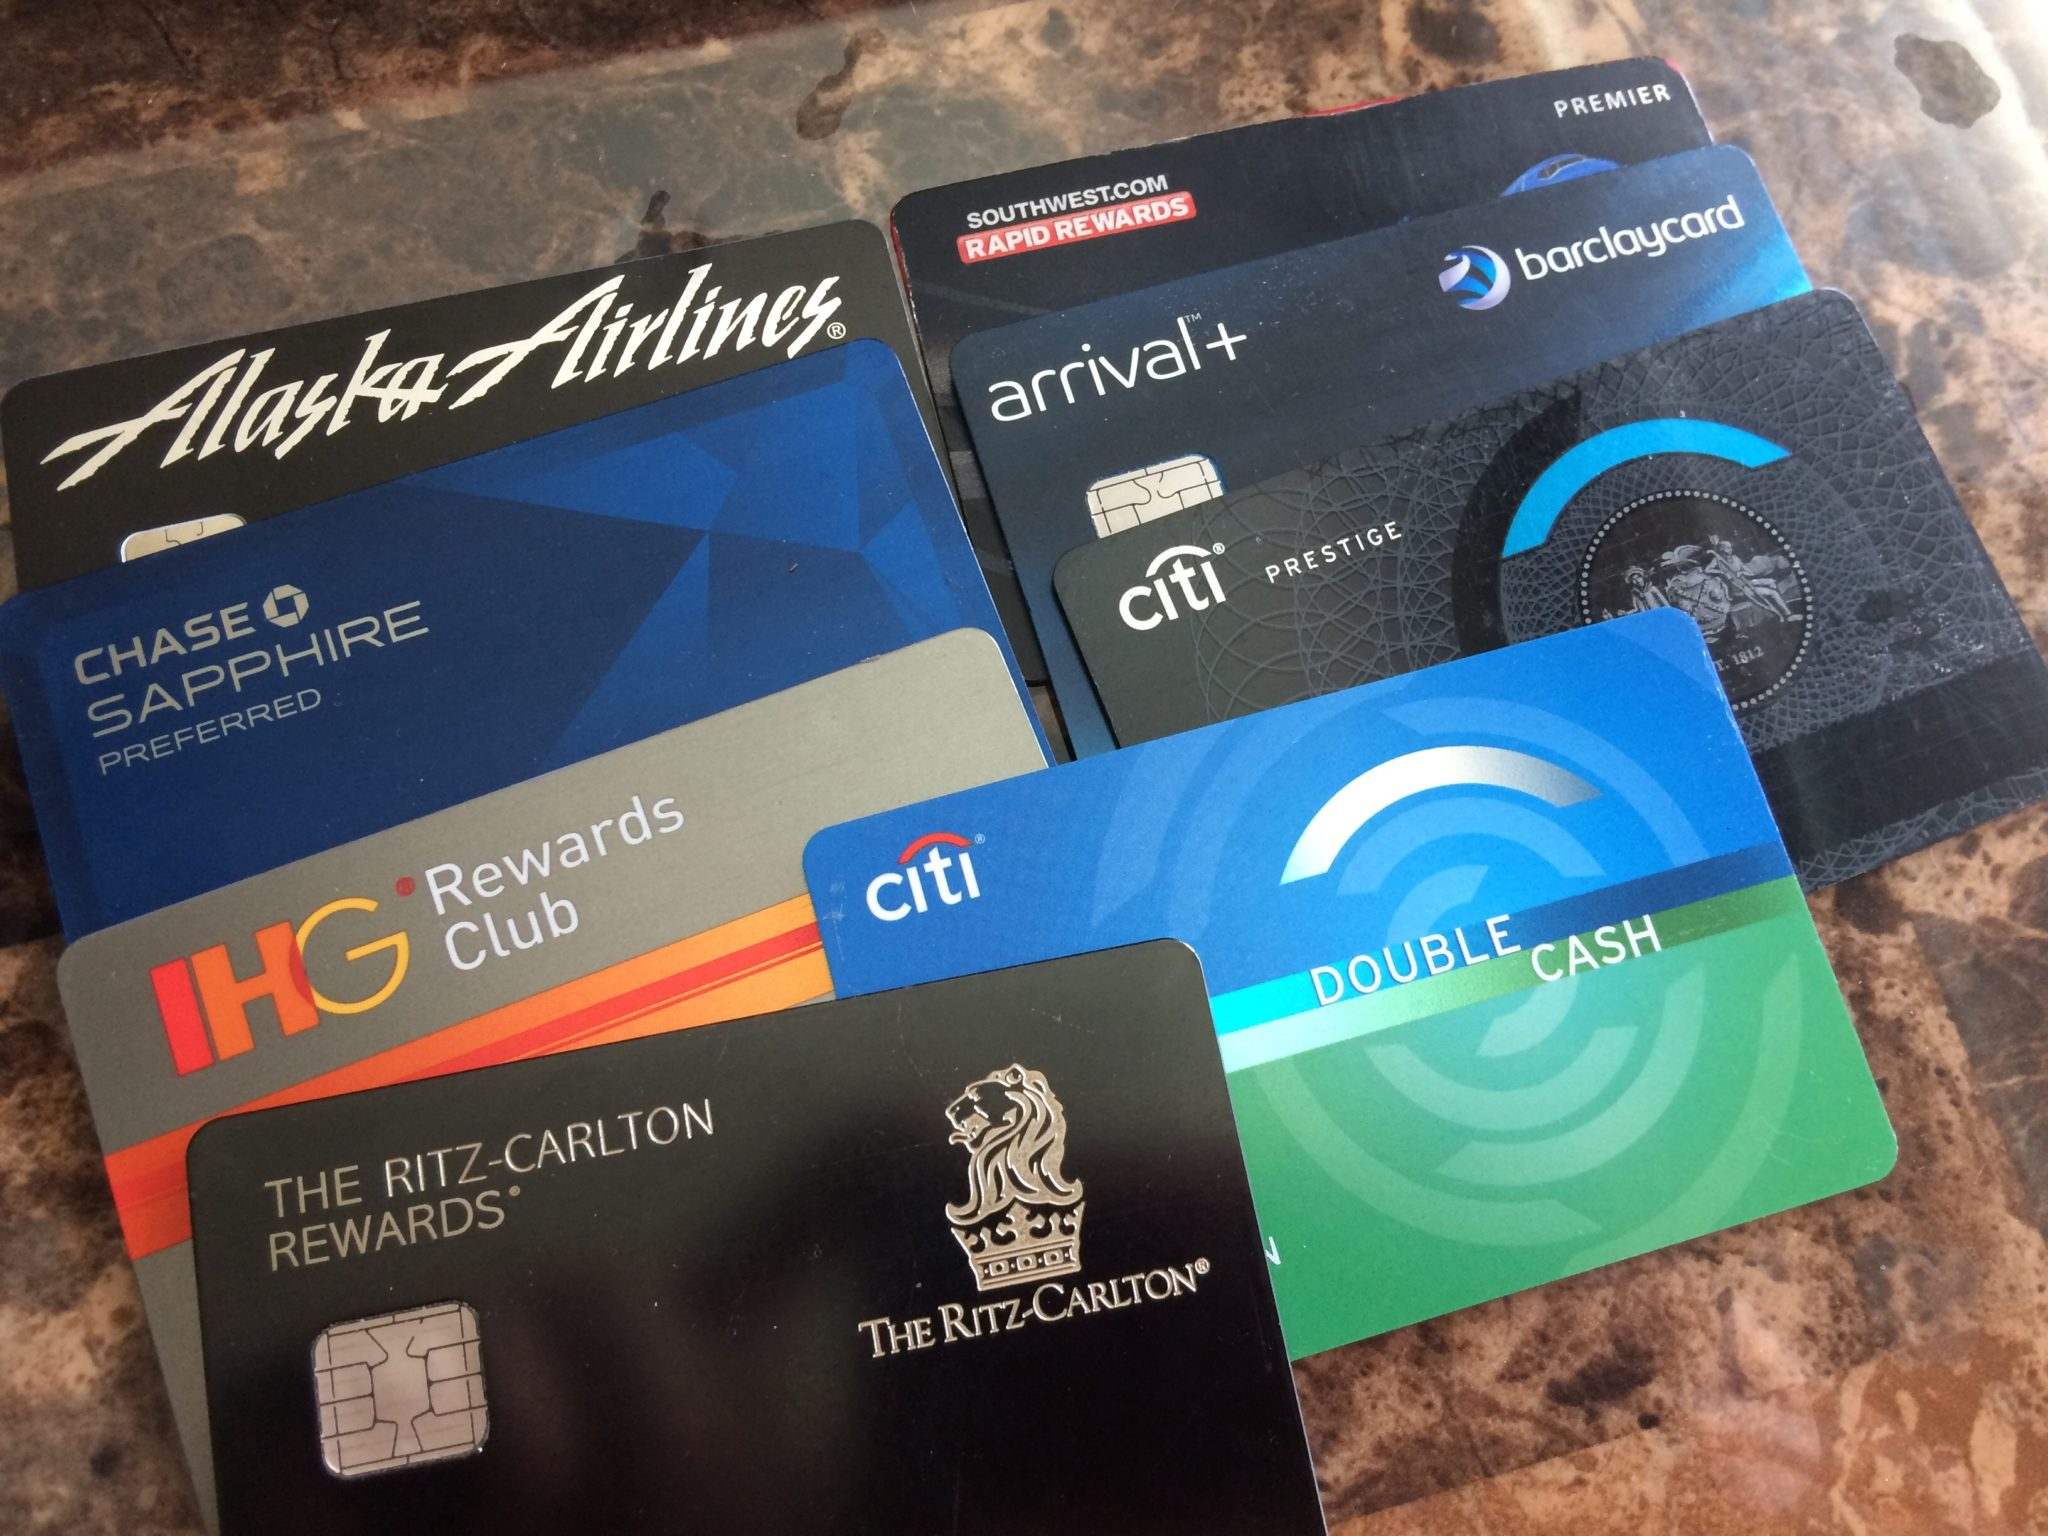 Business credit card receipt retention gallery card design and success failure with may retention calls baldthoughts credit cards plenty of cards reheart gallery reheart Gallery